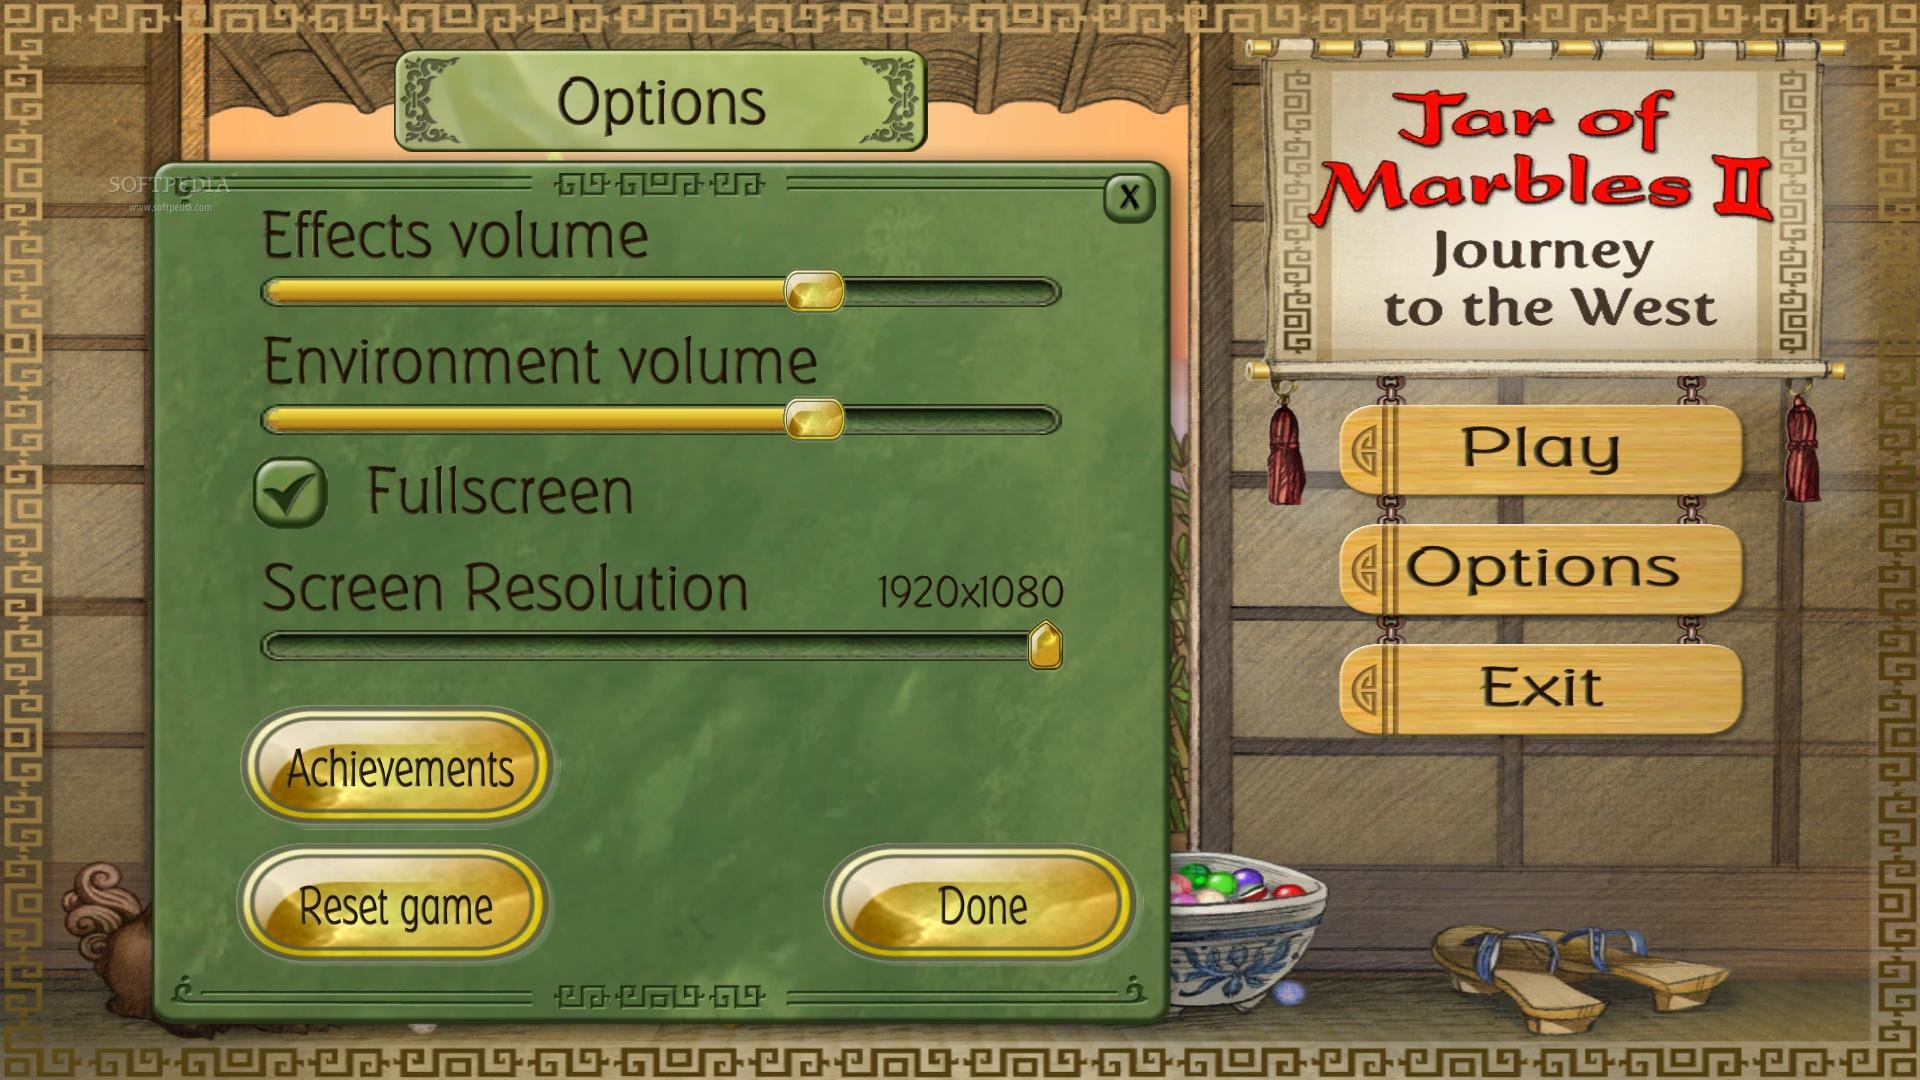 Jar of Marbles II: Journey to the West screenshot 2